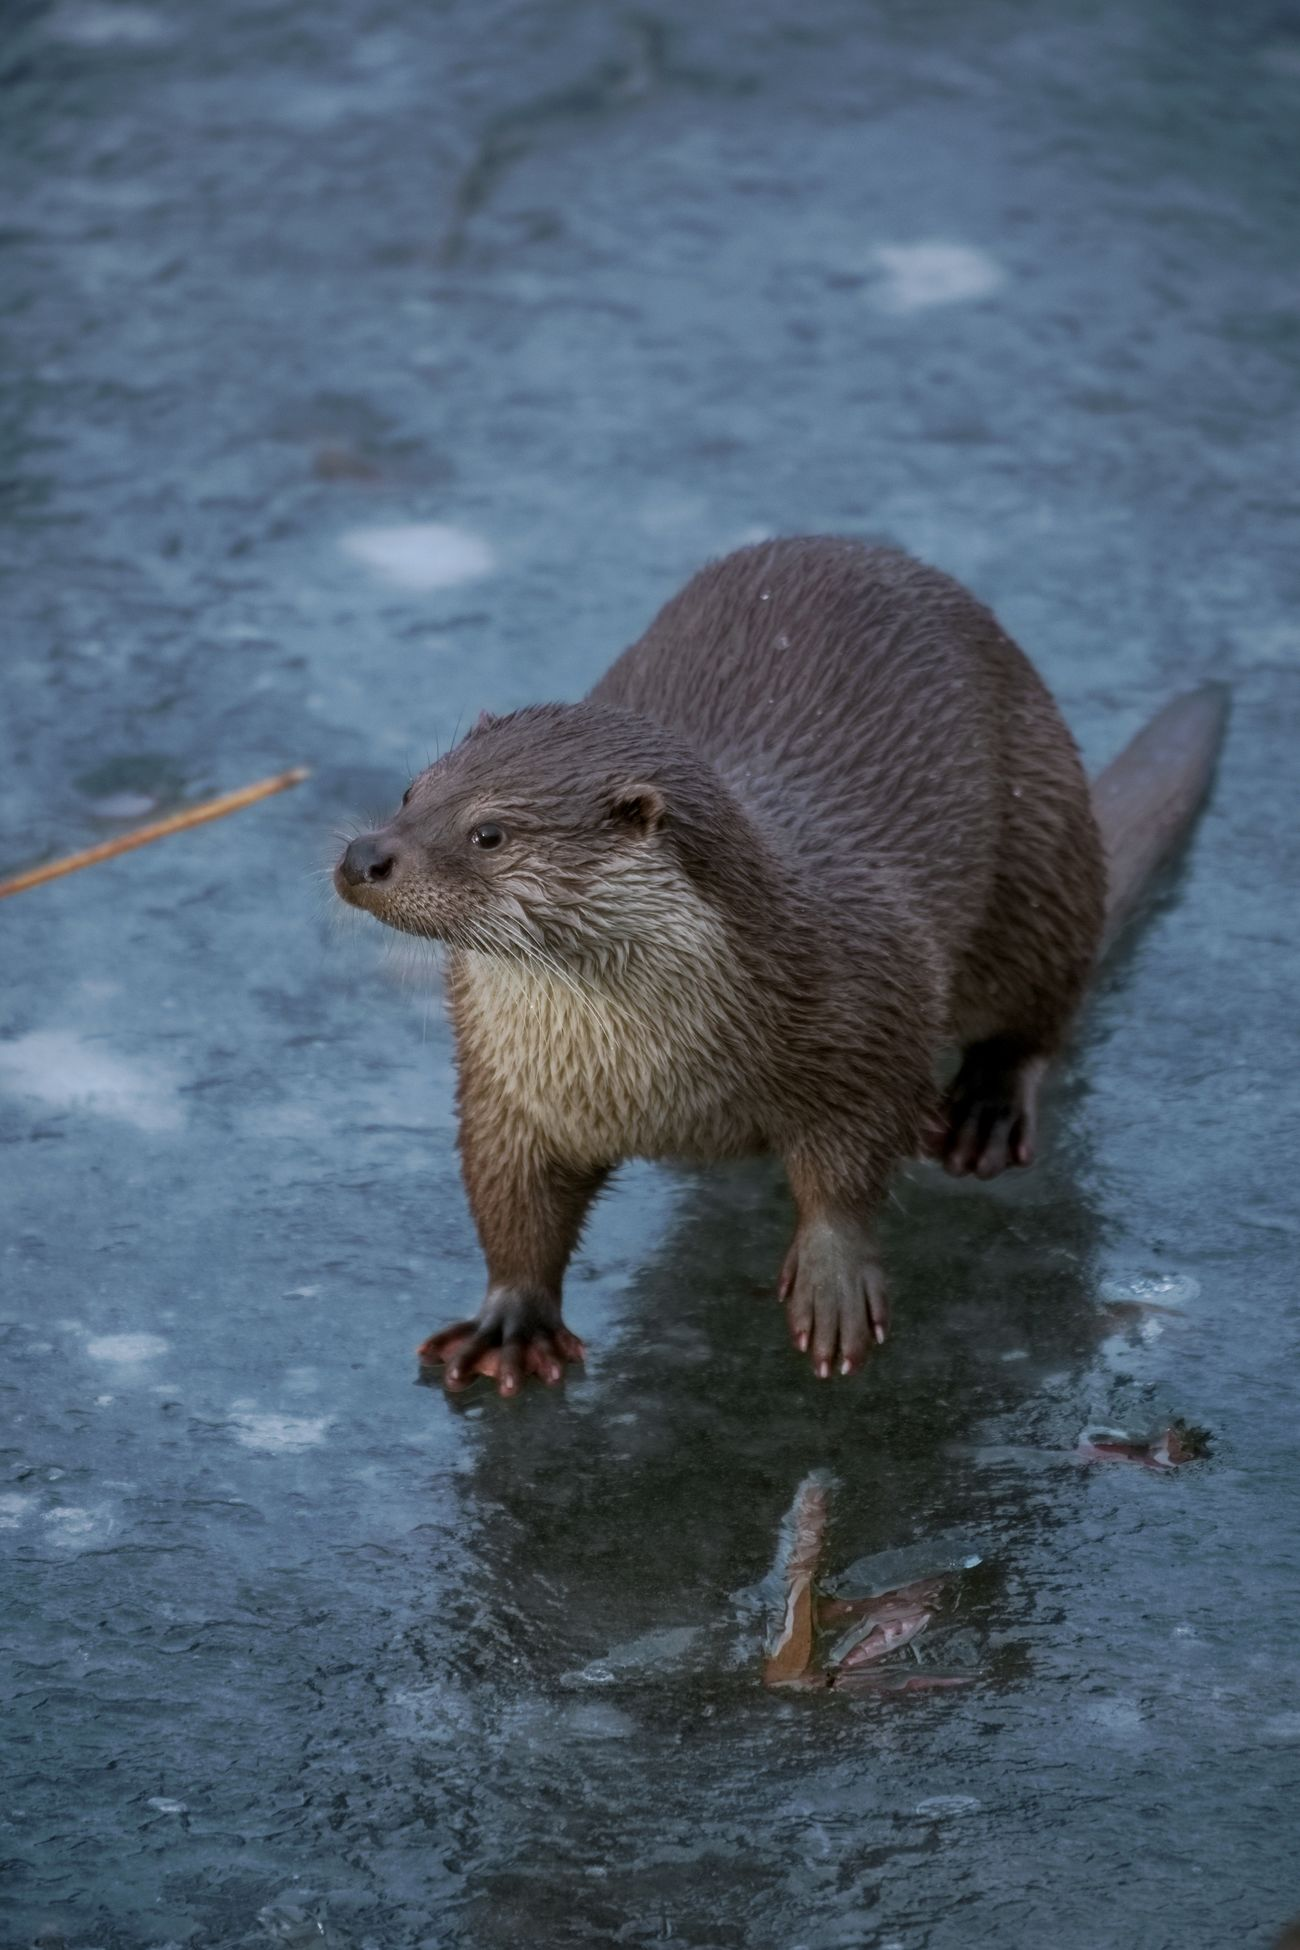 One Animal Otter Fischotter Beautiful Tiere Animal Photography Tierfotografie Cute Animals Schön Winter Winter Wonderland